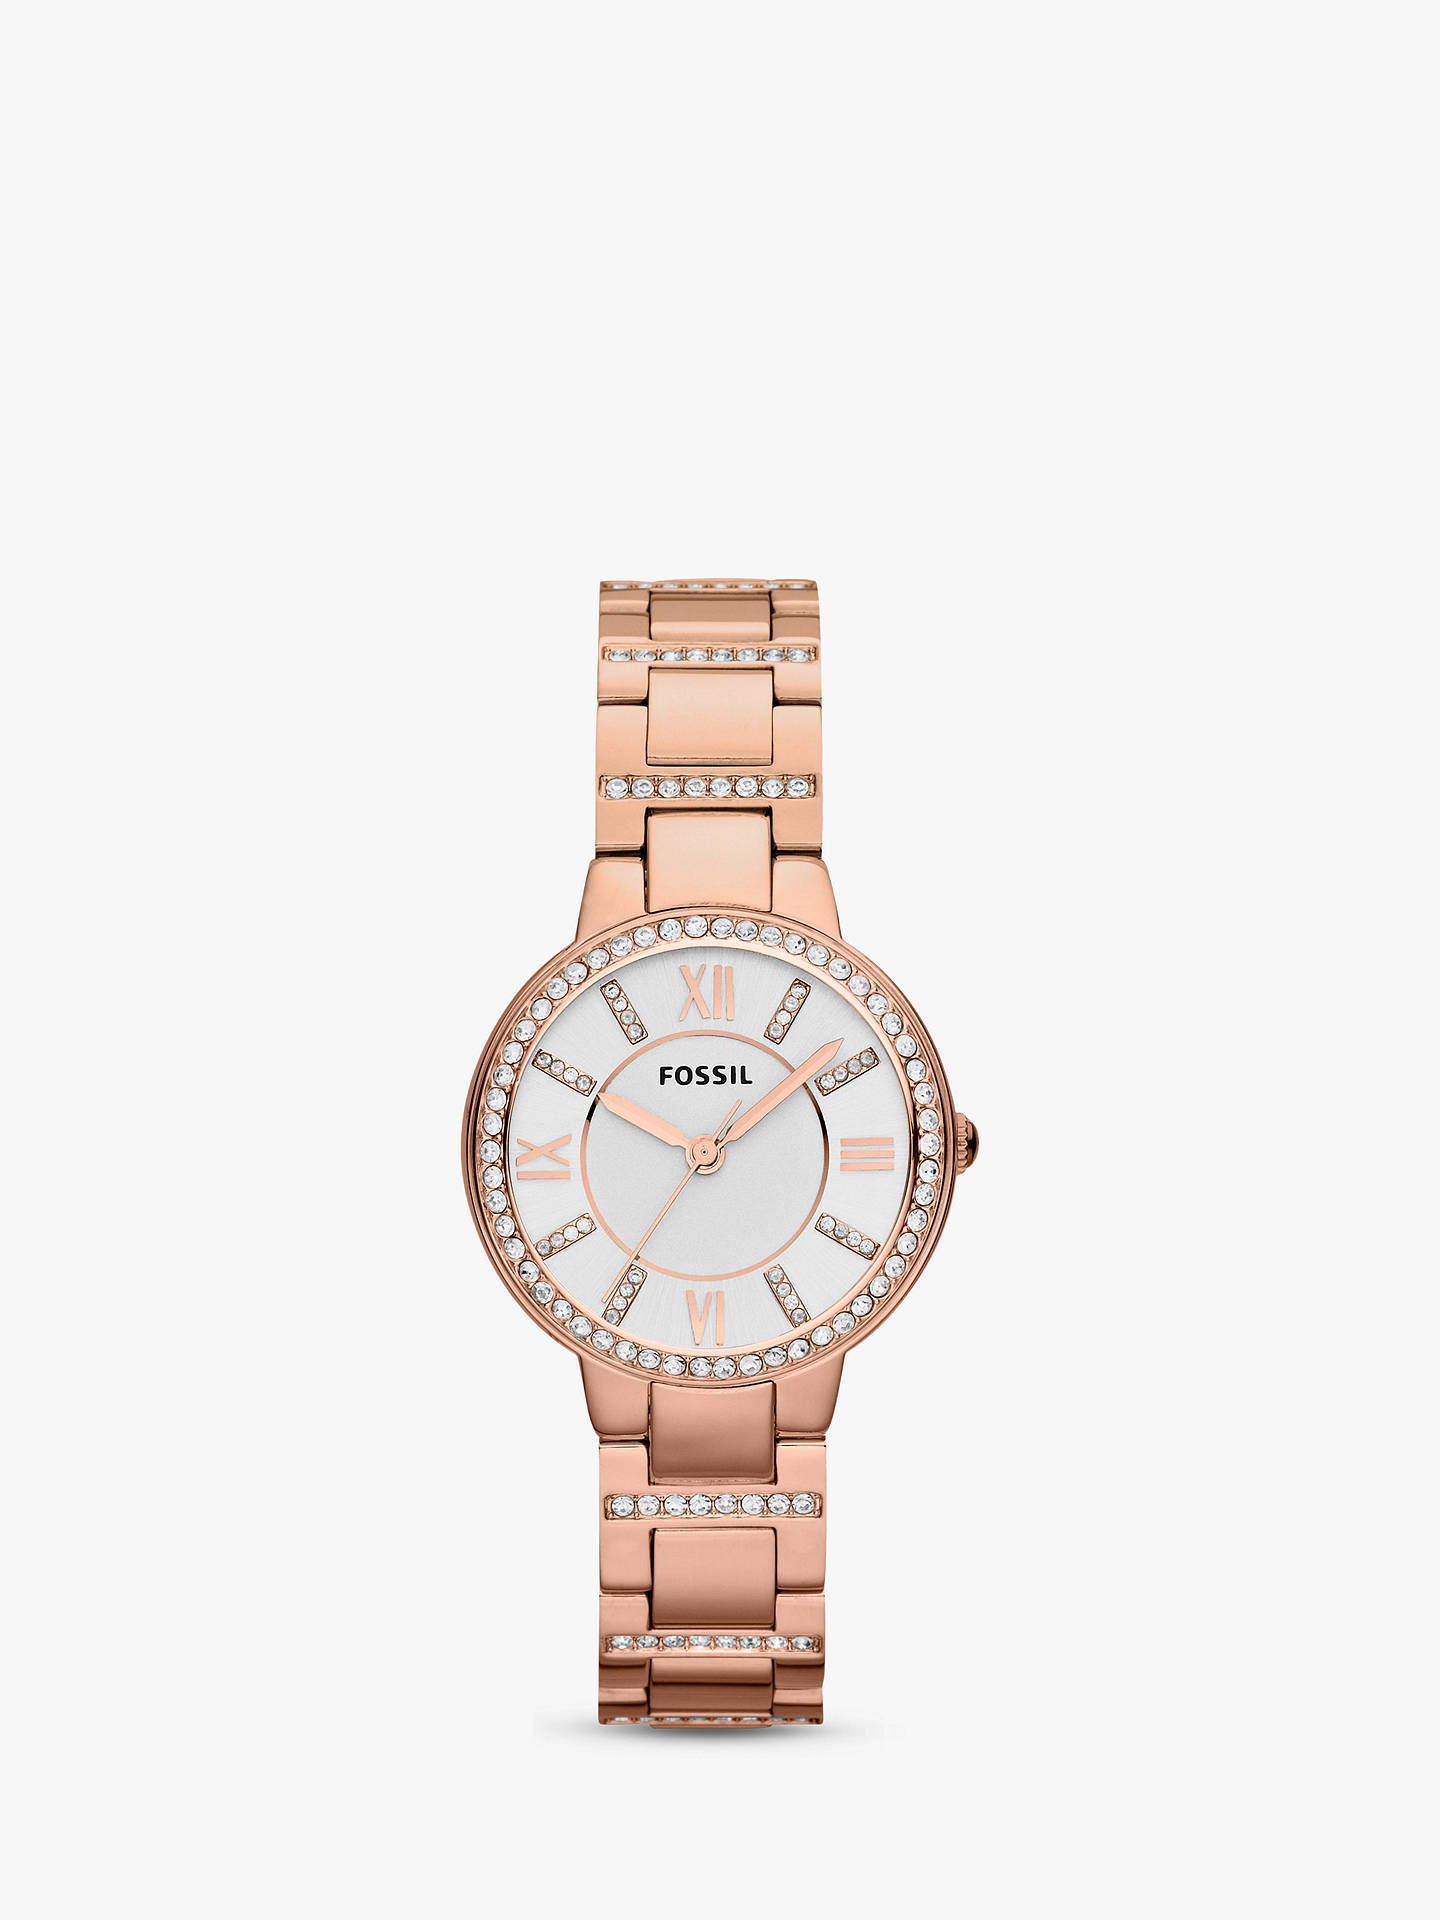 8ce0ce32ee Fossil ES3284 Women's Virginia Stainless Steel Bracelet Strap Watch, Rose  Gold/White